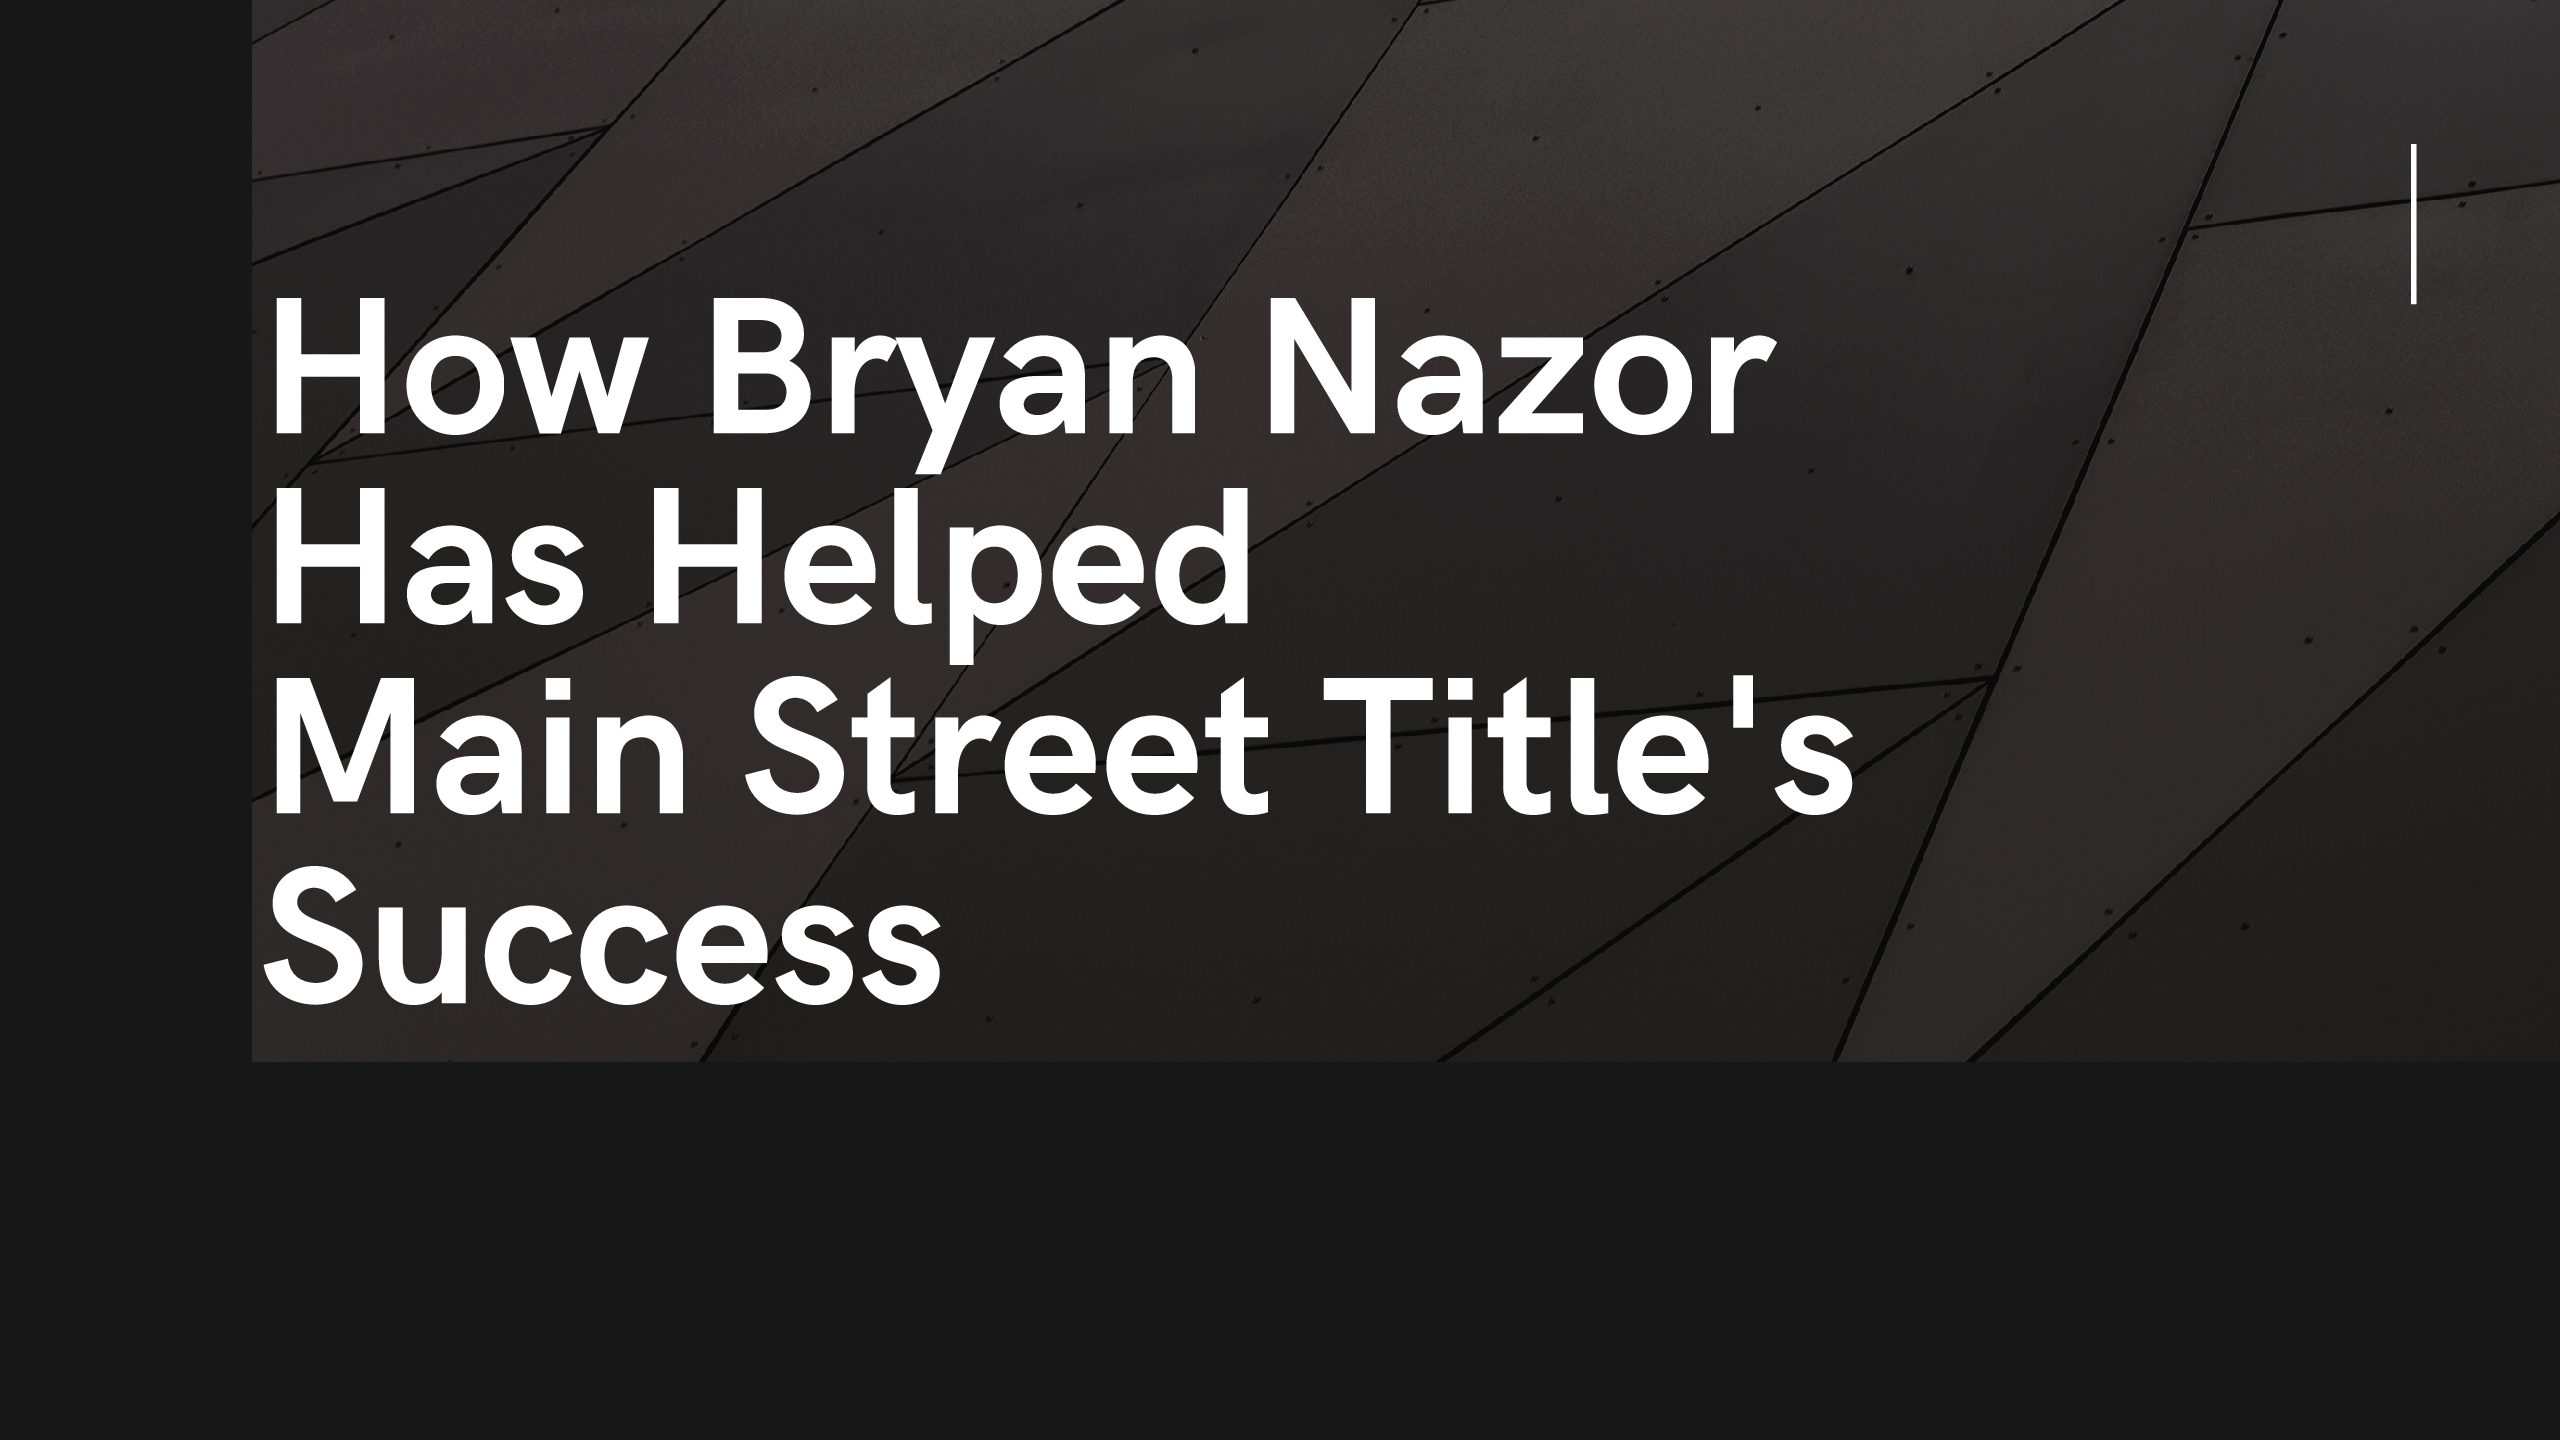 How Bryan Nazor Has Helped Main Street Title's Success